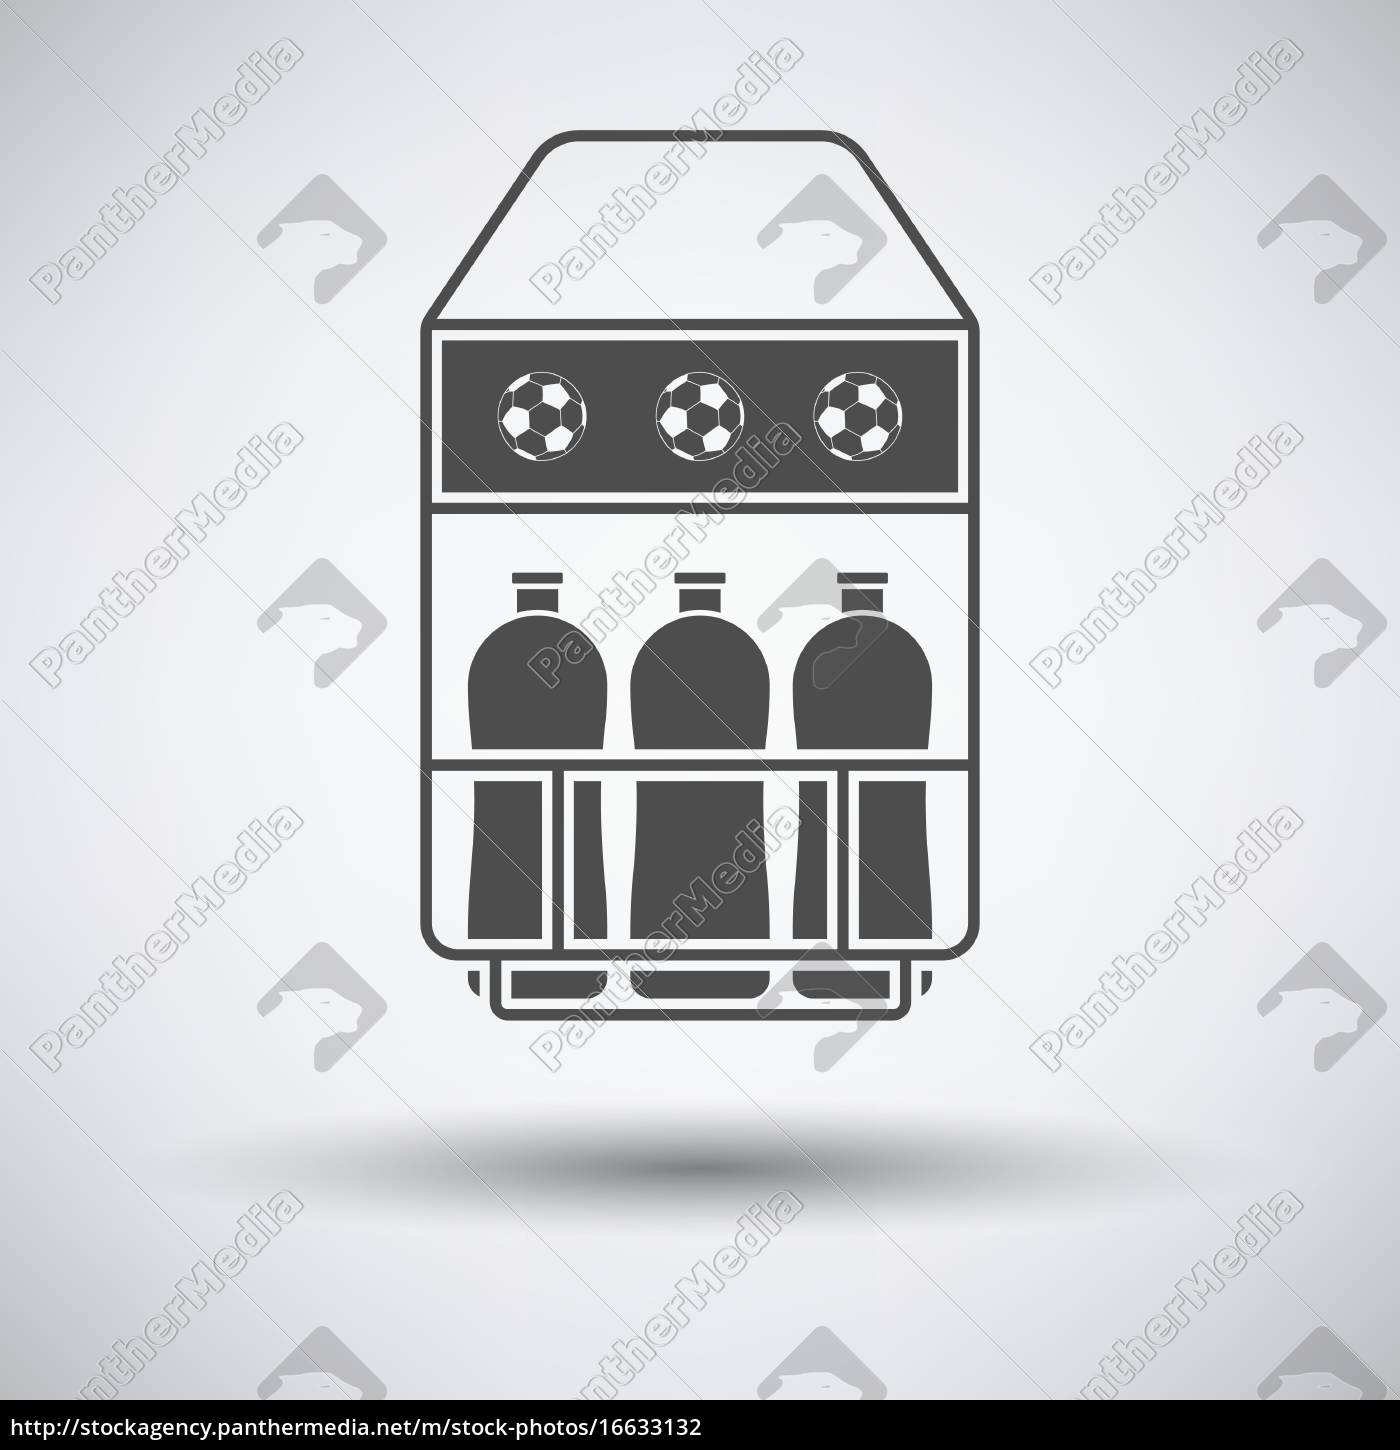 soccer, field, bottle, container, icon, - 16633132